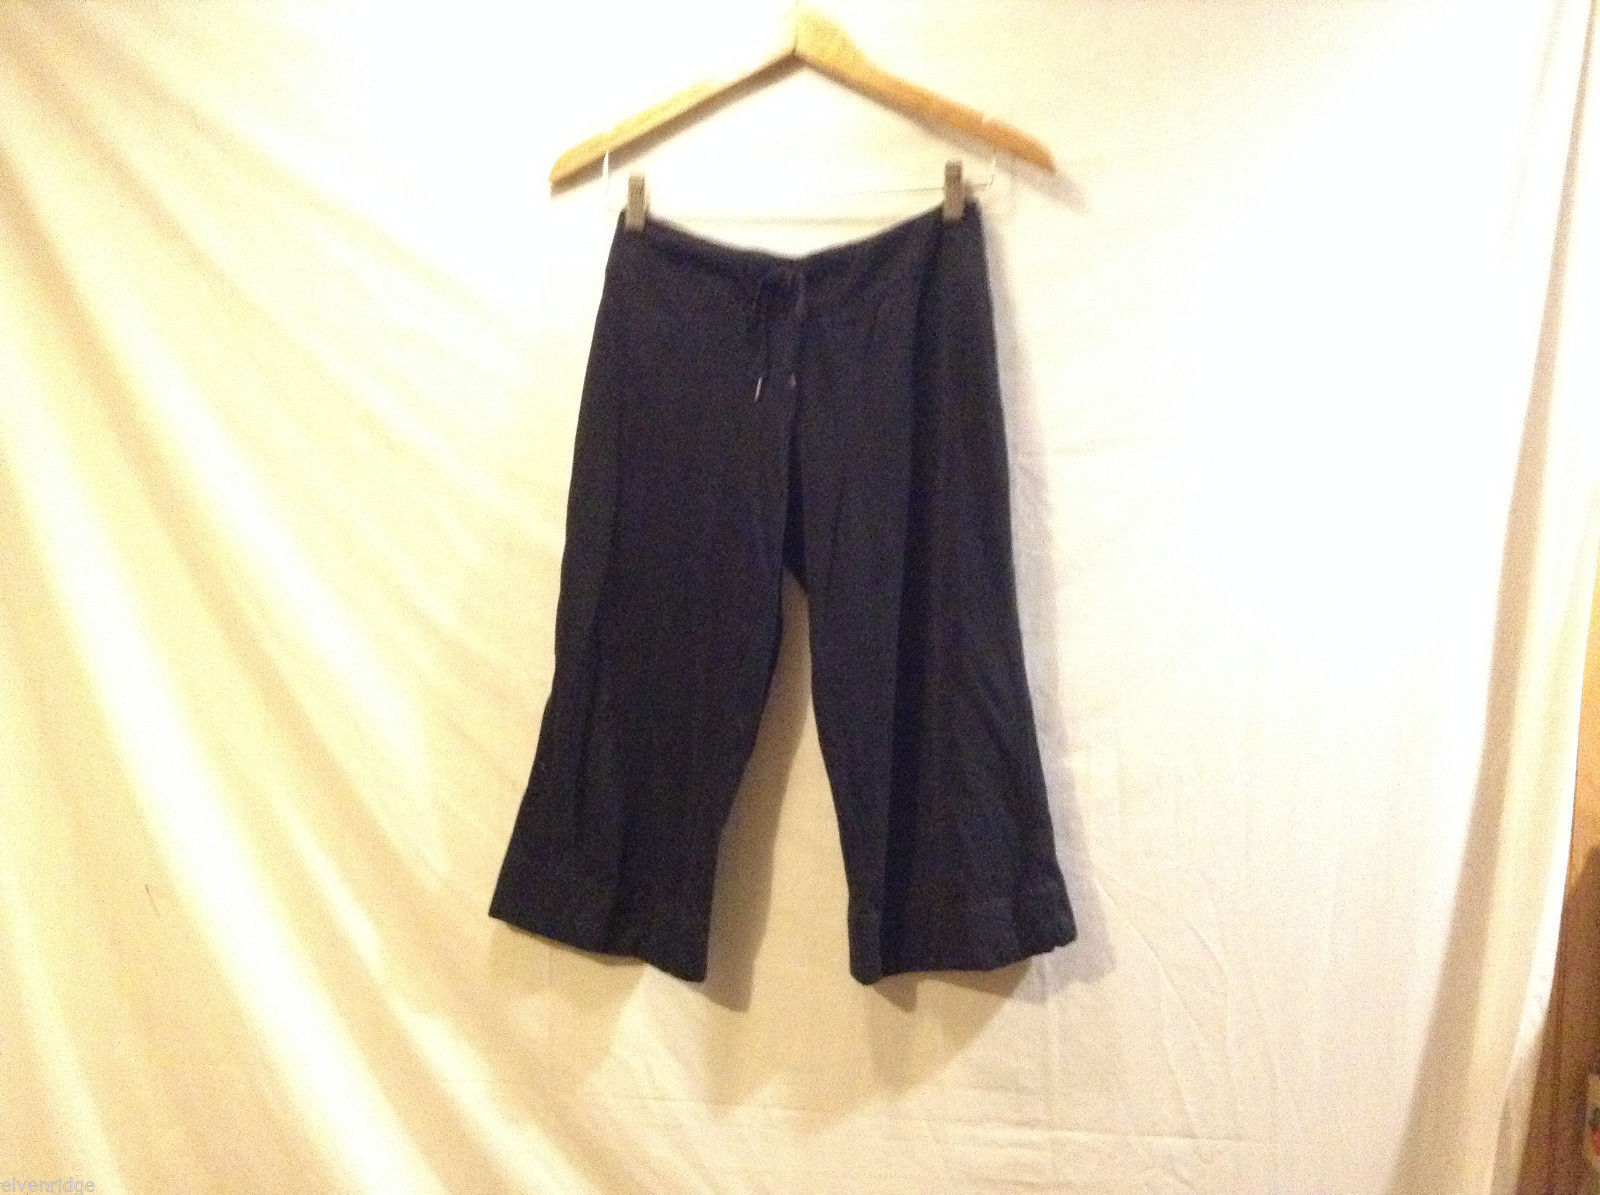 G.W. black stretchy yoga capri pants unlined, NO Size tag